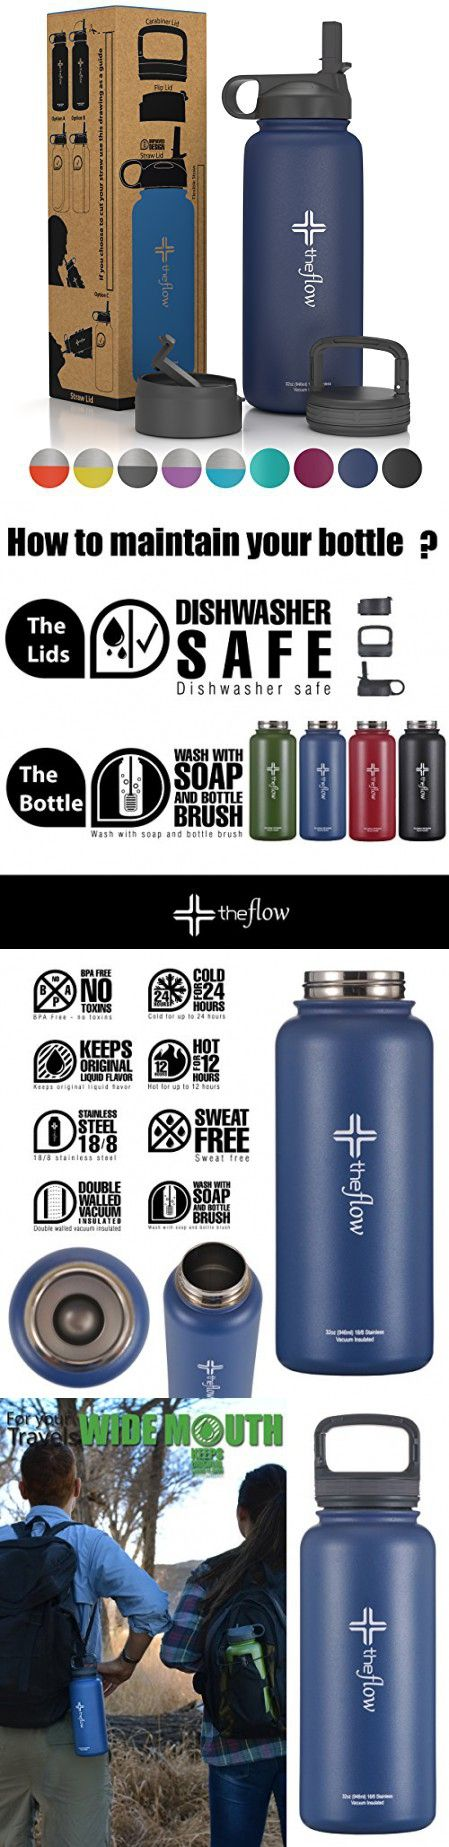 The flow Stainless Steel Water Bottle Double Walled/Vacuum Insulated - BPA/Toxin Free  Wide Mouth with Straw Lid, Carabiner Lid and Flip Lid, 32 oz.(1 Liter) Denim blue